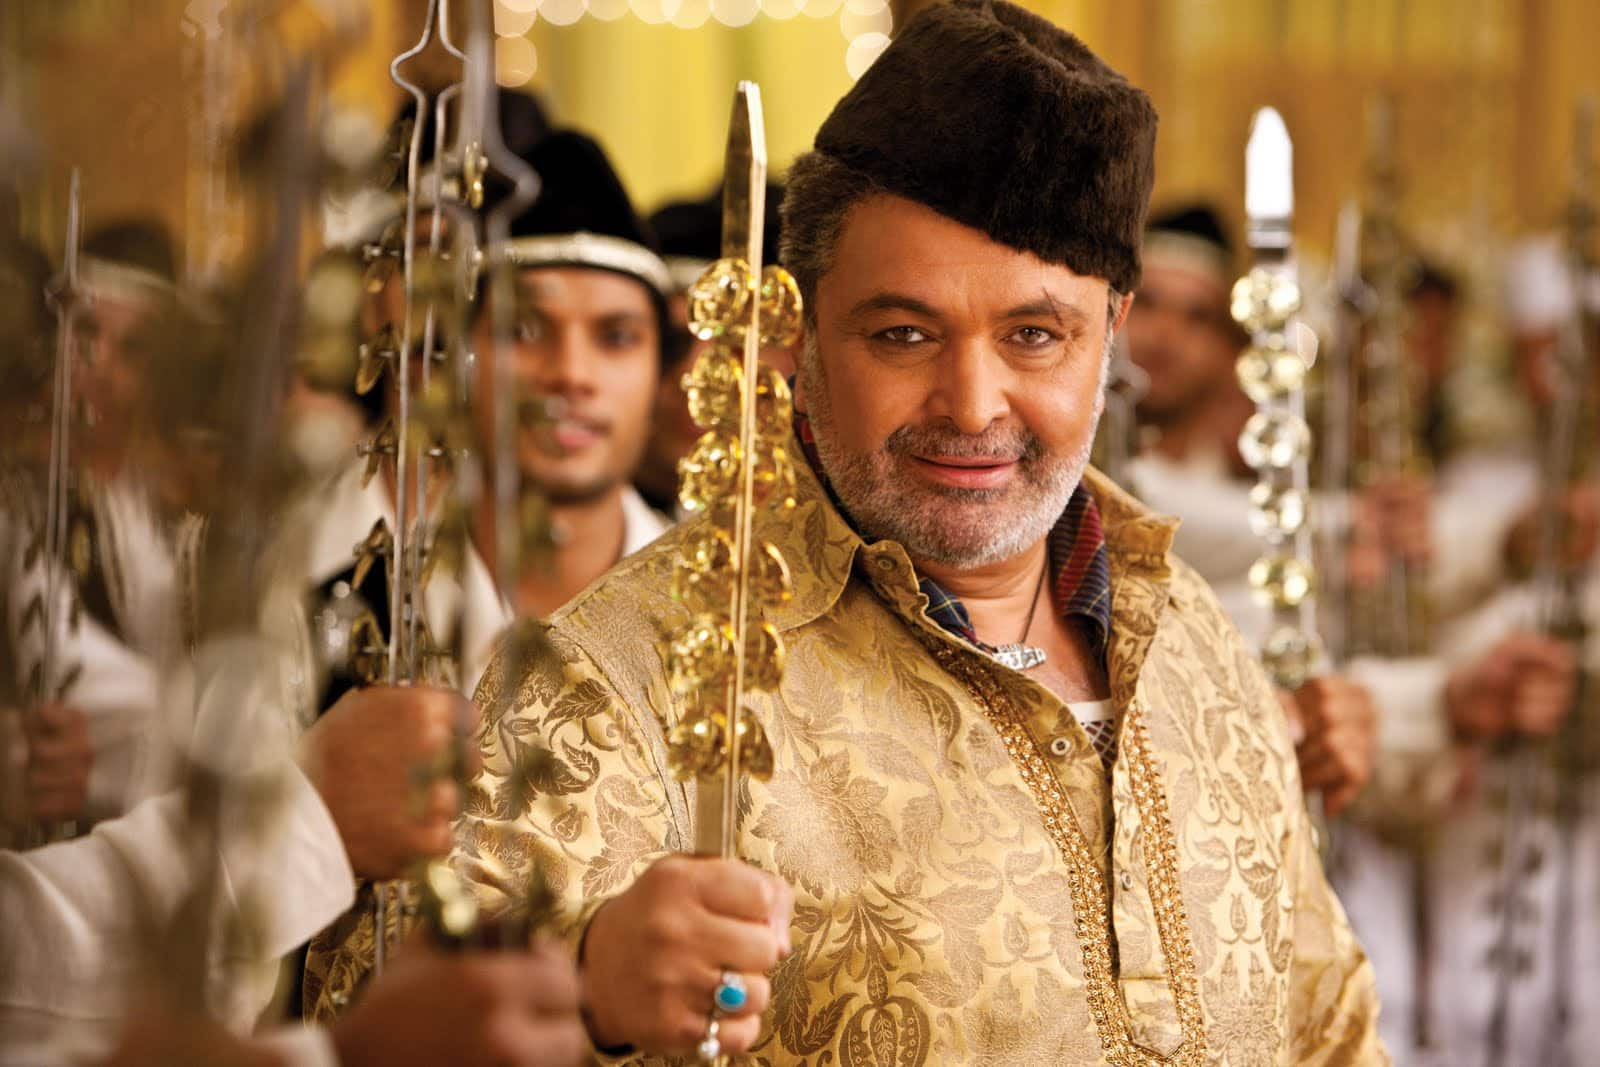 Rishi Kapoor Did Not Want To Sign Agneepath For This Reason; Was Shocked When Offered Do Dooni Chaar